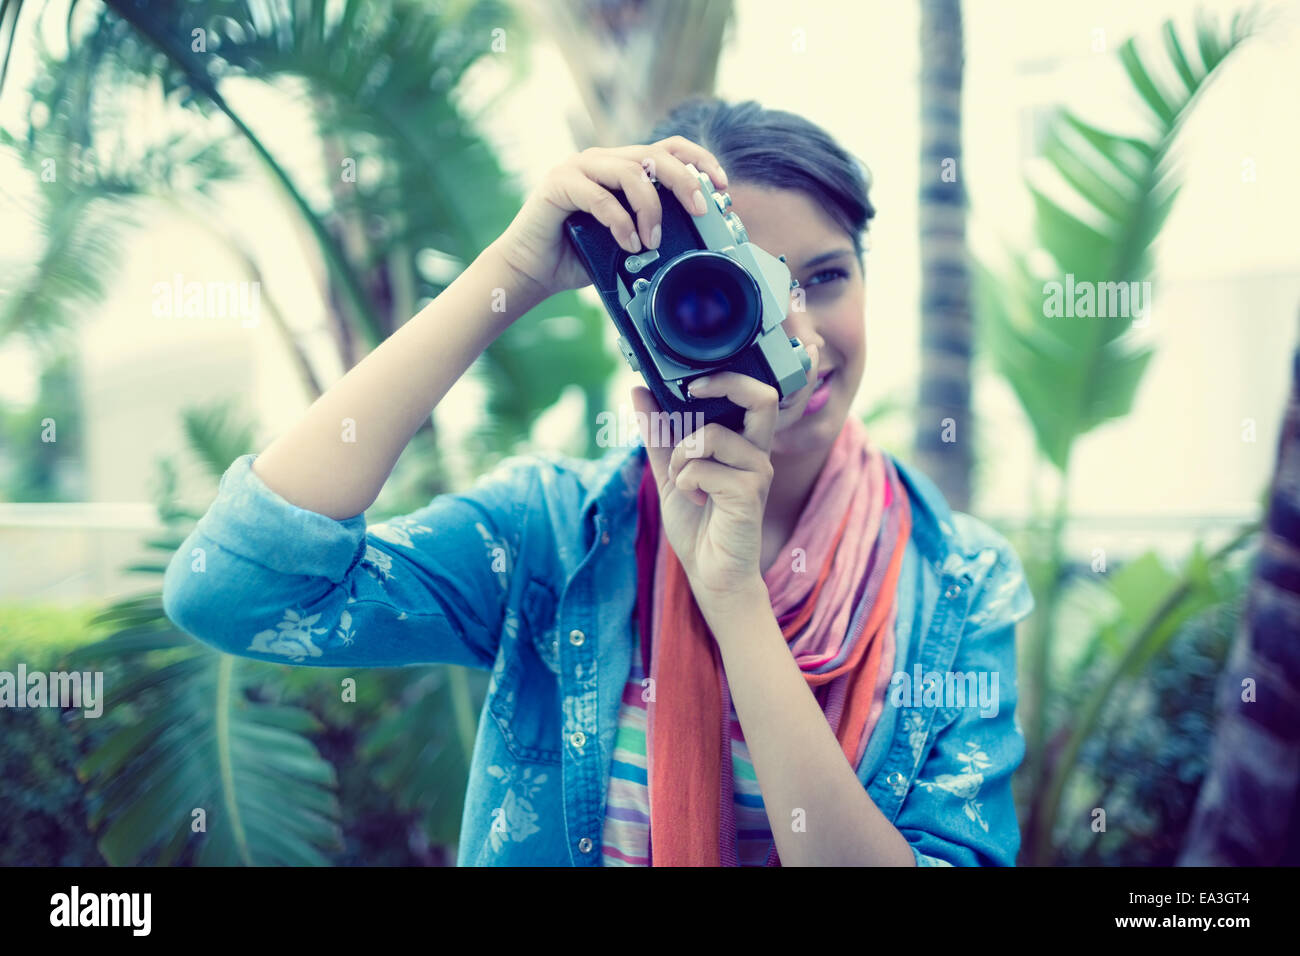 Smiling brunette taking a photo outside Stock Photo